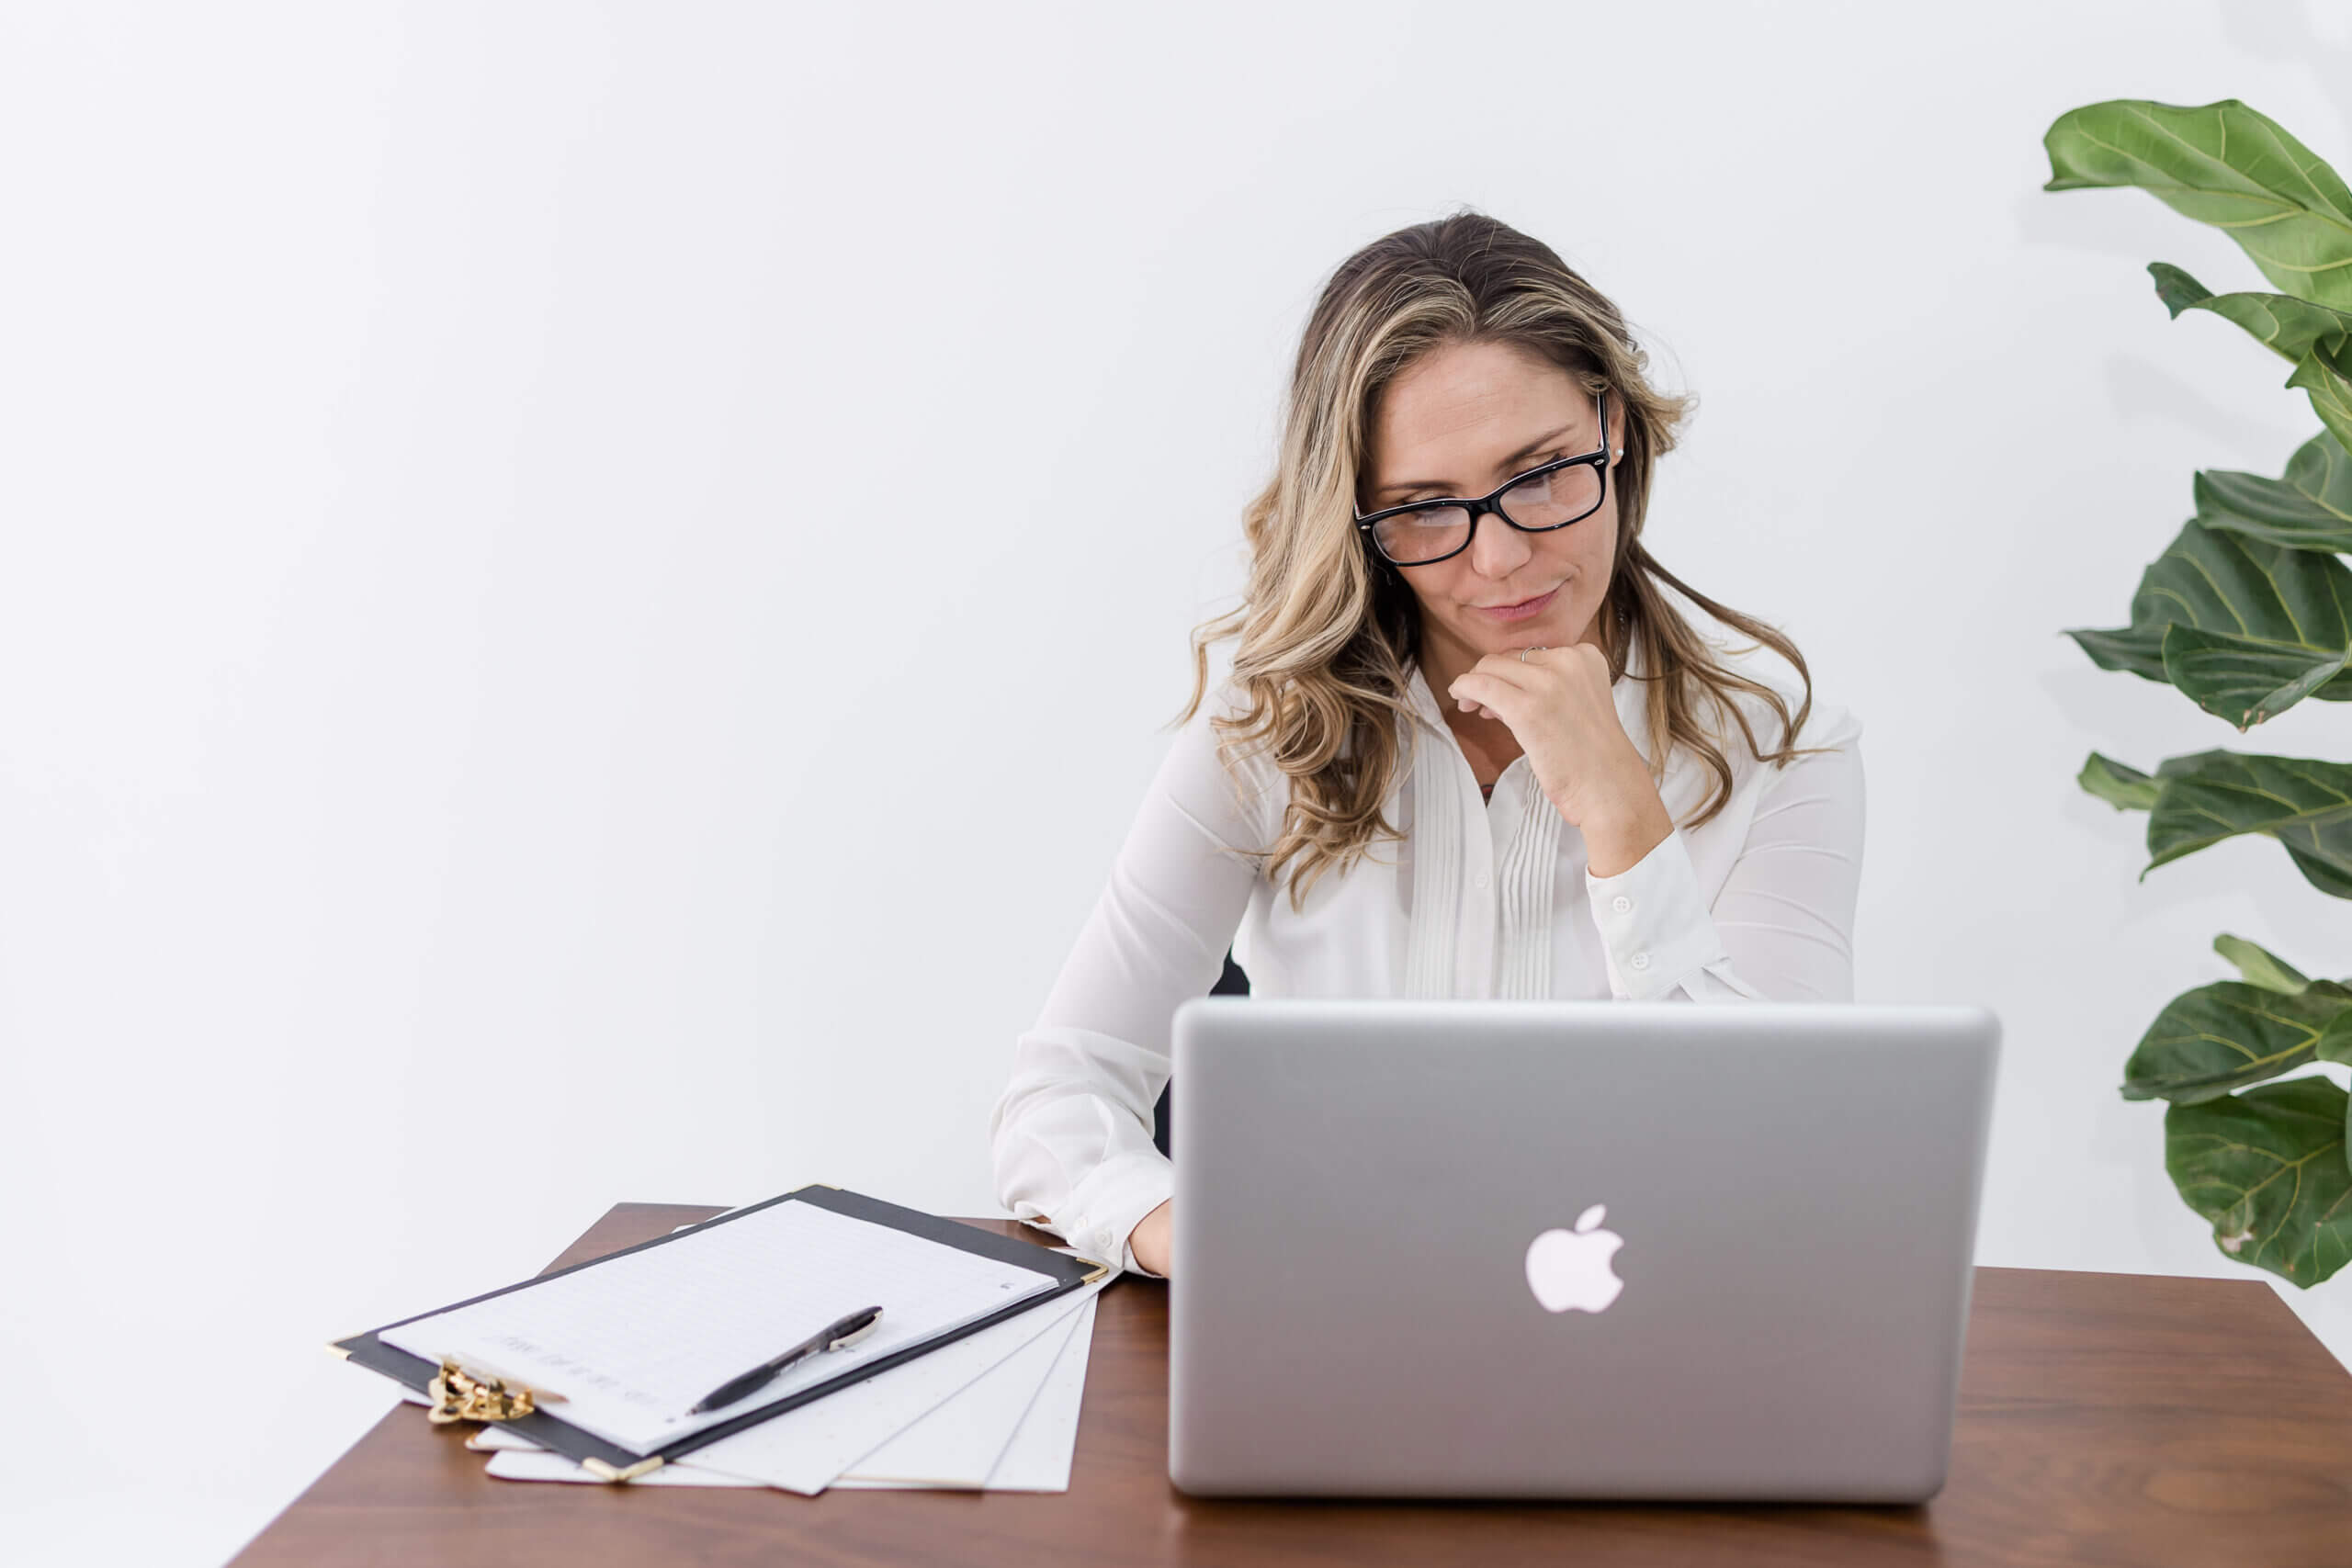 How to Choose a Freelance Writing Niche (In 5 Easy Steps!)